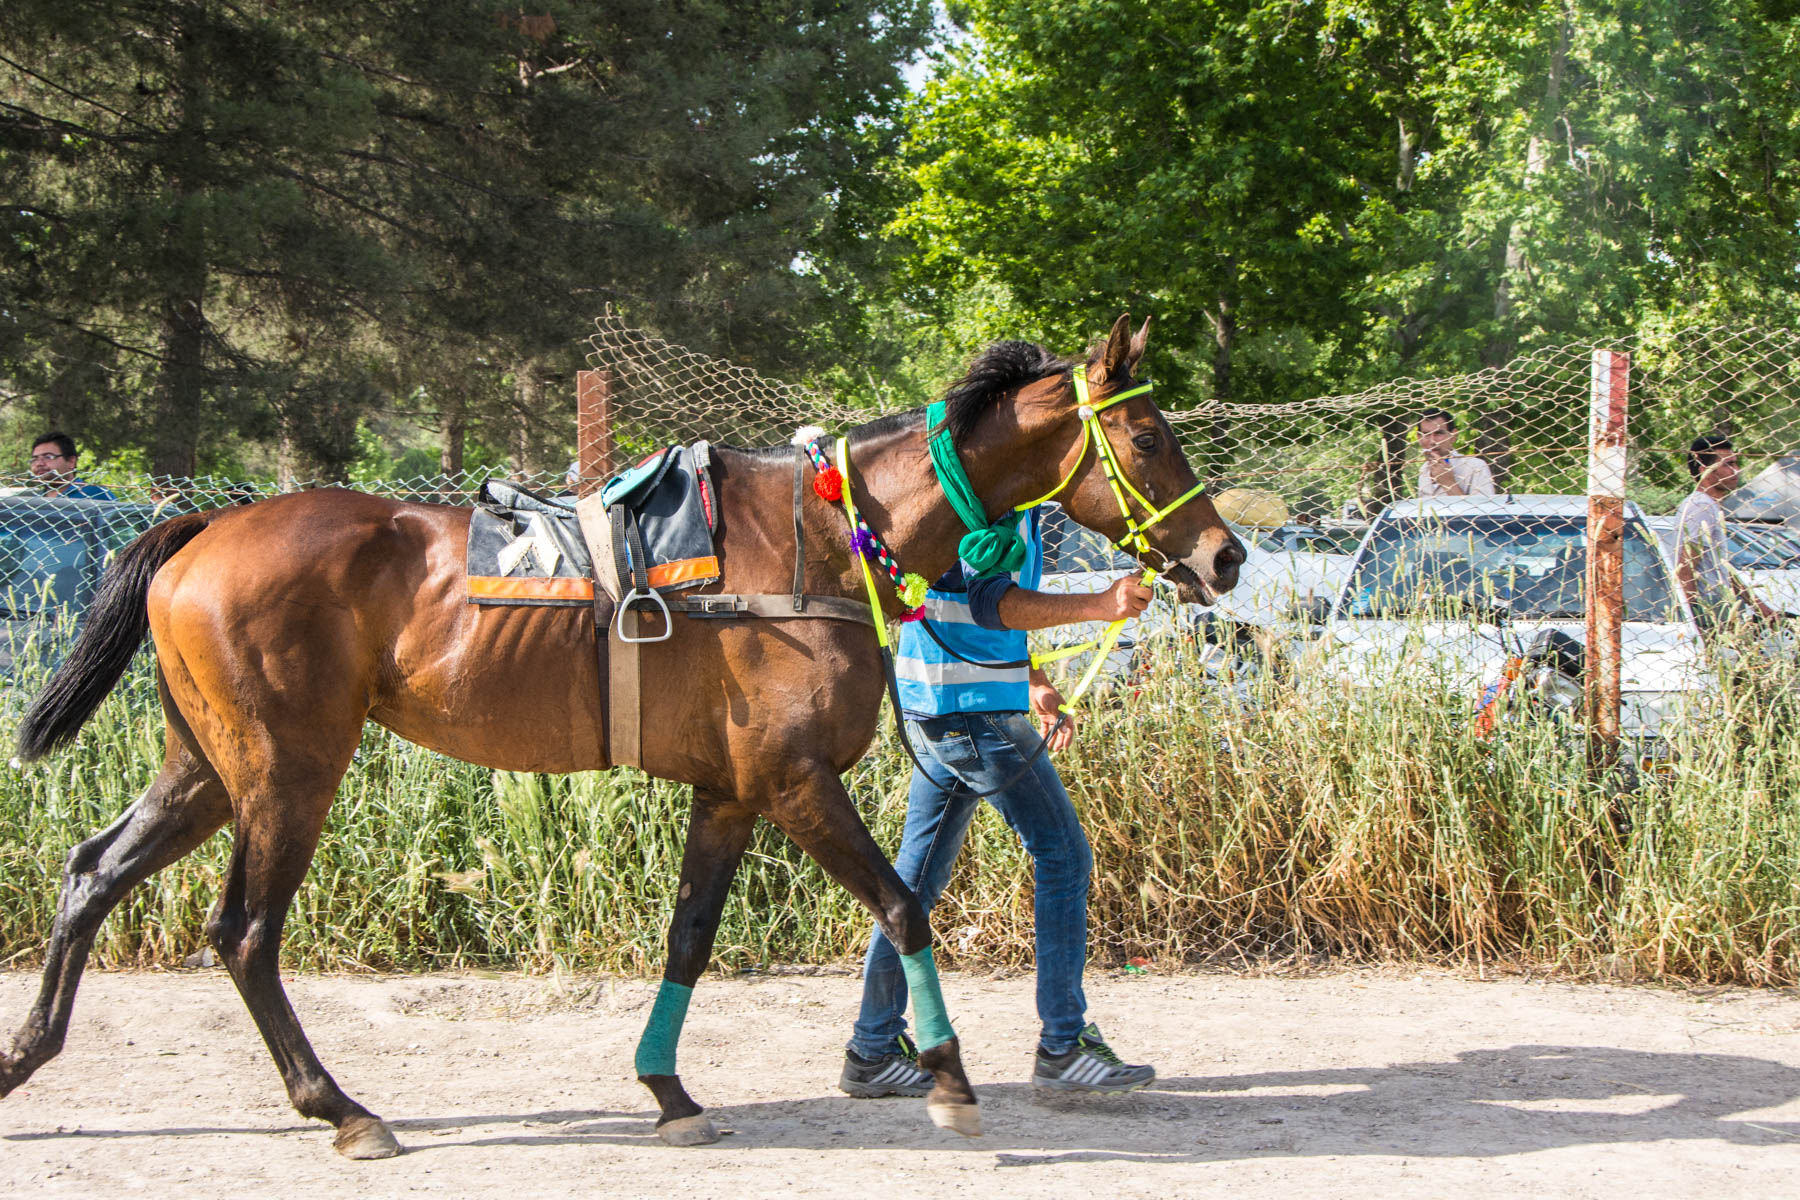 A stable hand leading a horse at the horse races in Gonbad-e Kavus